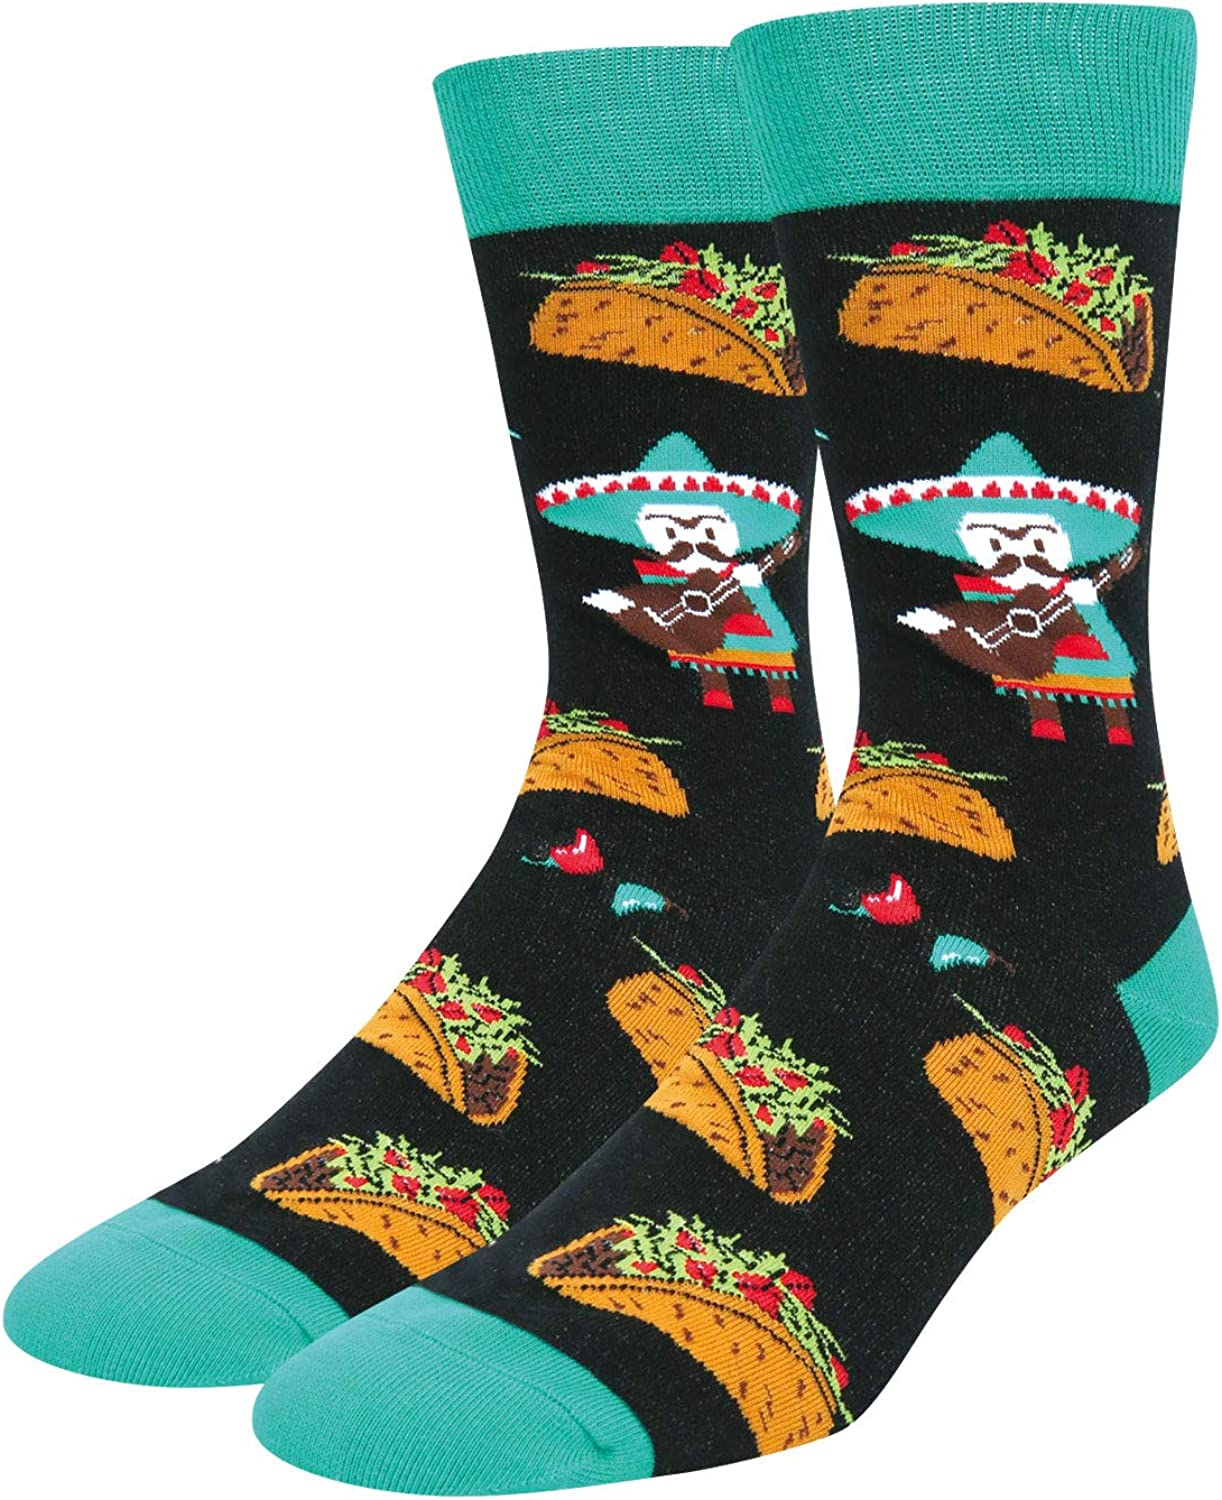 Zmart Men's Funny Food Fruit Socks Crazy Novelty Pineapple Taco Pizza Socks